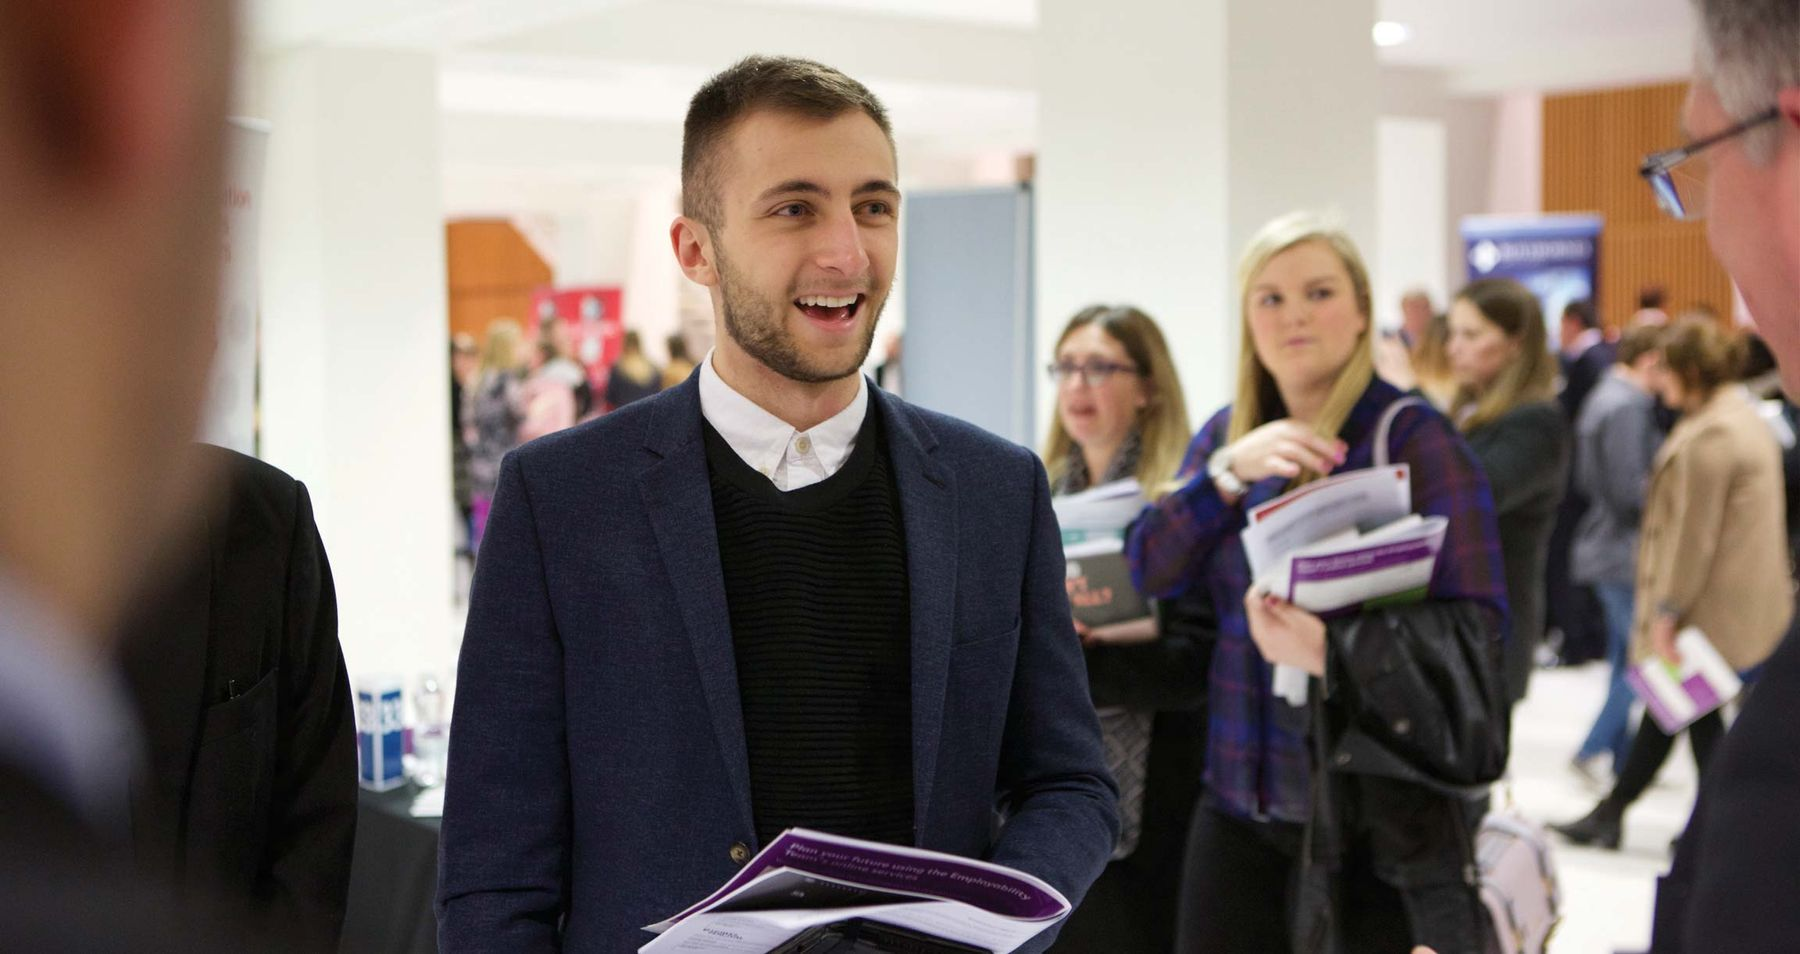 Student at employability fair